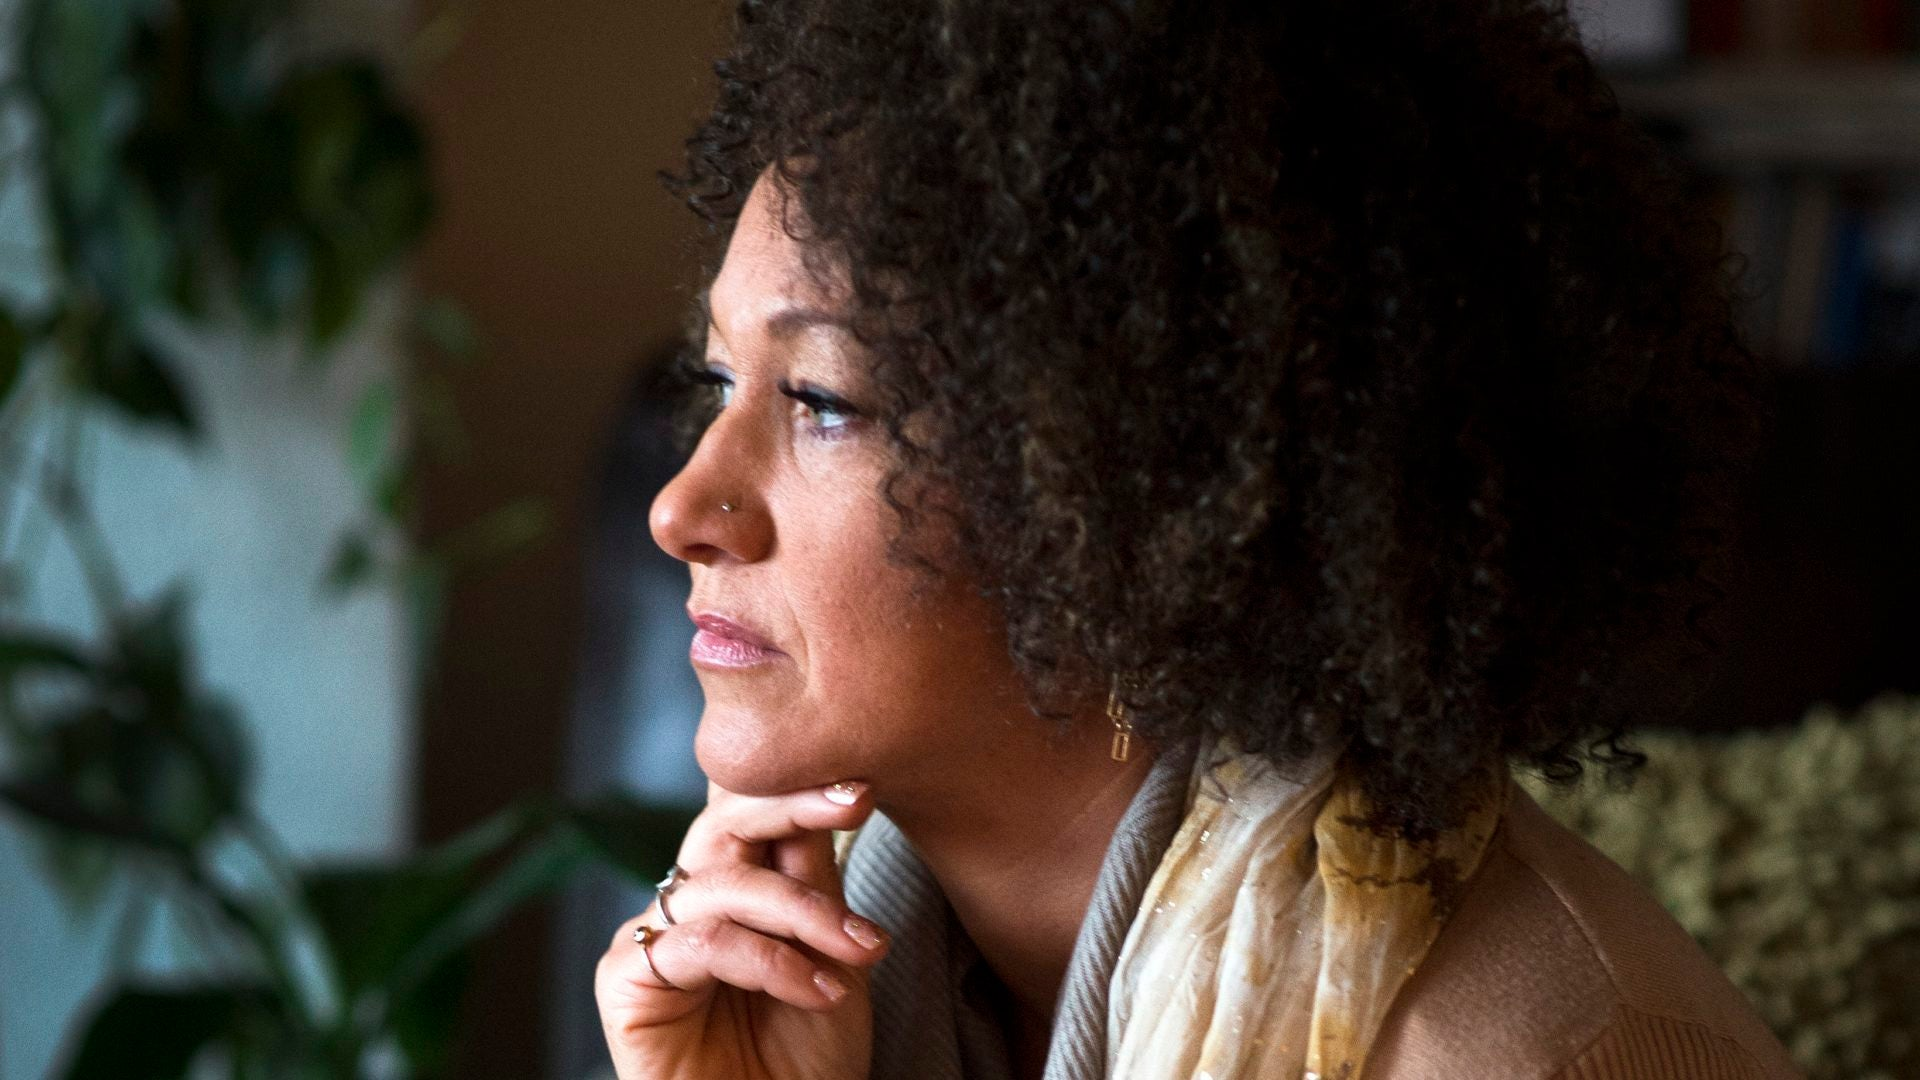 The Internet Wants To Know Who Is Going To Rachel Dolezal To Get Their Hair Done